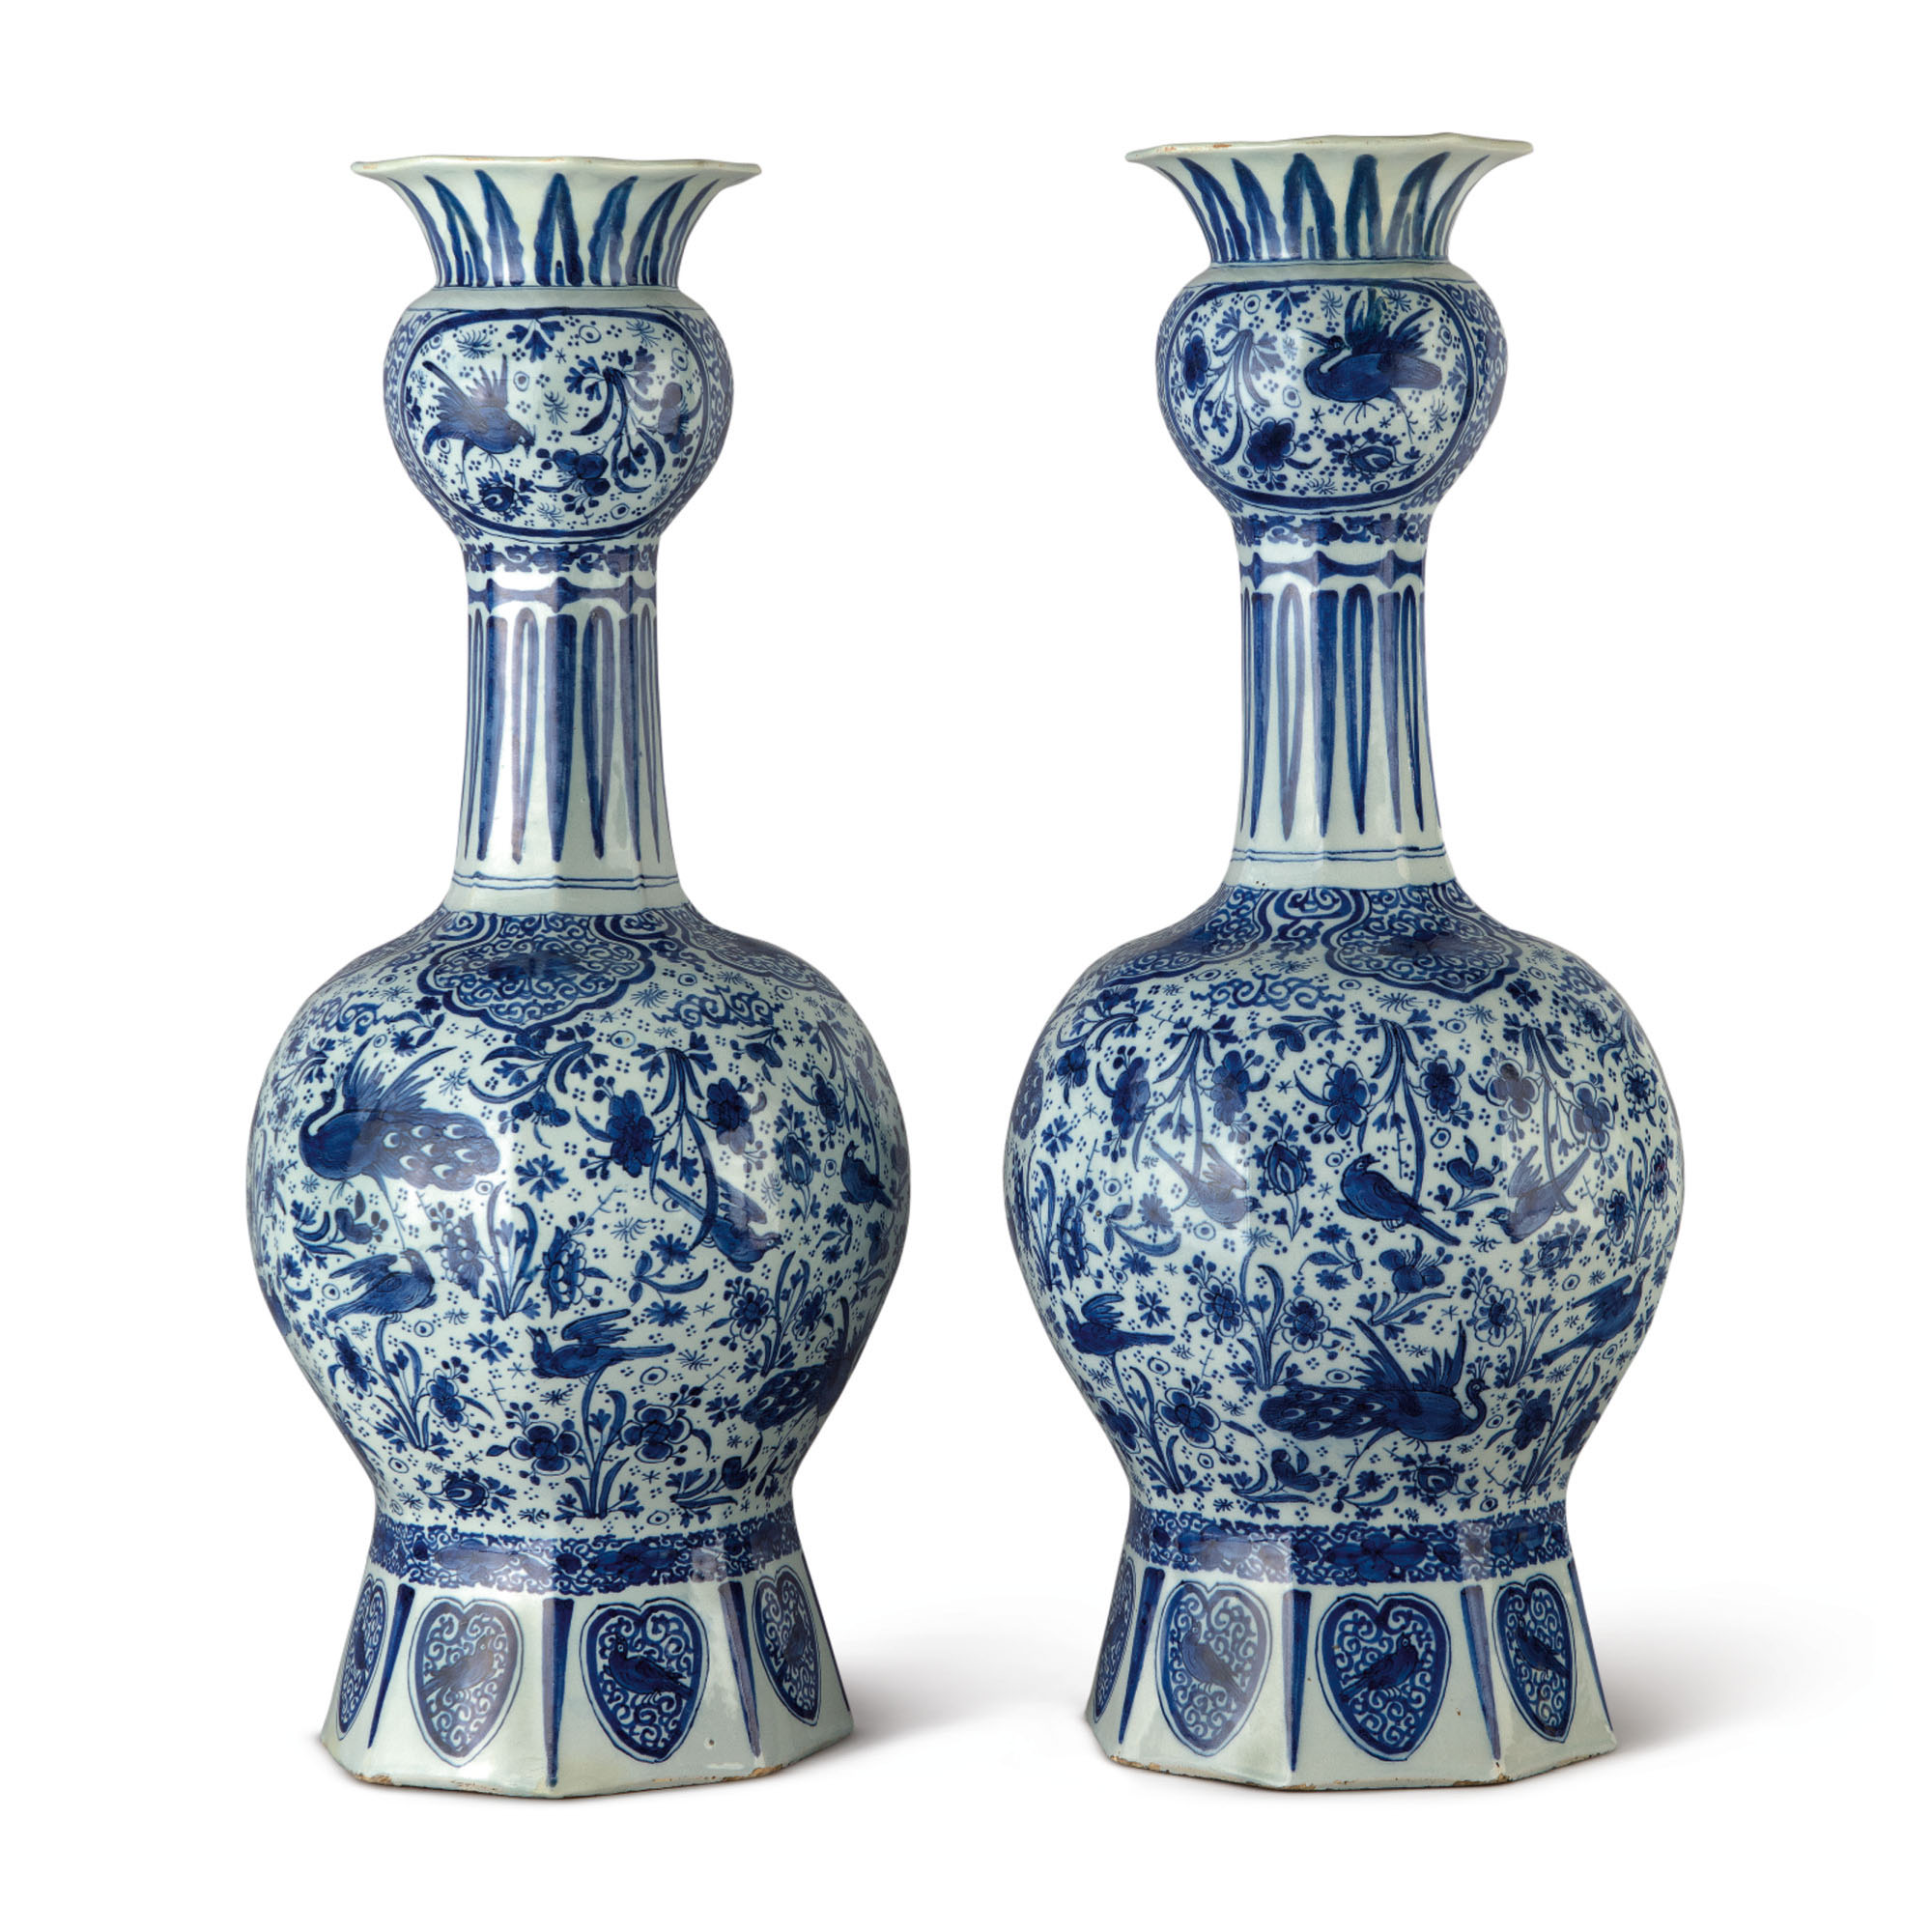 A PAIR OF DUTCH DELFT BLUE AND WHITE LARGE VASES, CIRCA 1700